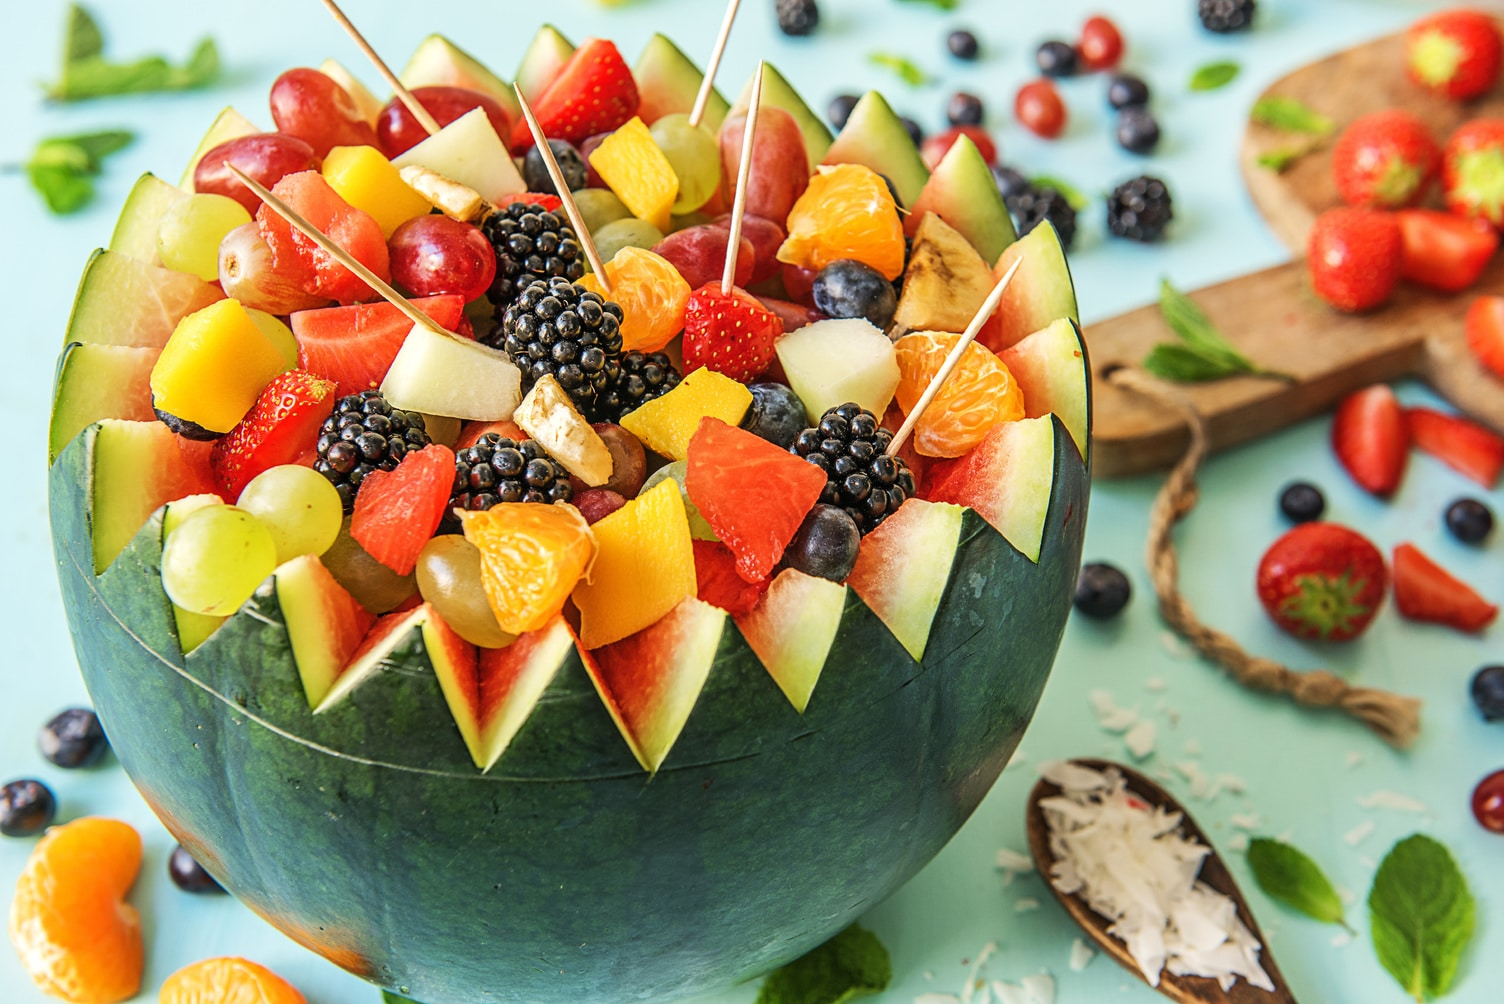 6 Simple Fruit Salad Ideas That'll Save Snacktime | The ...